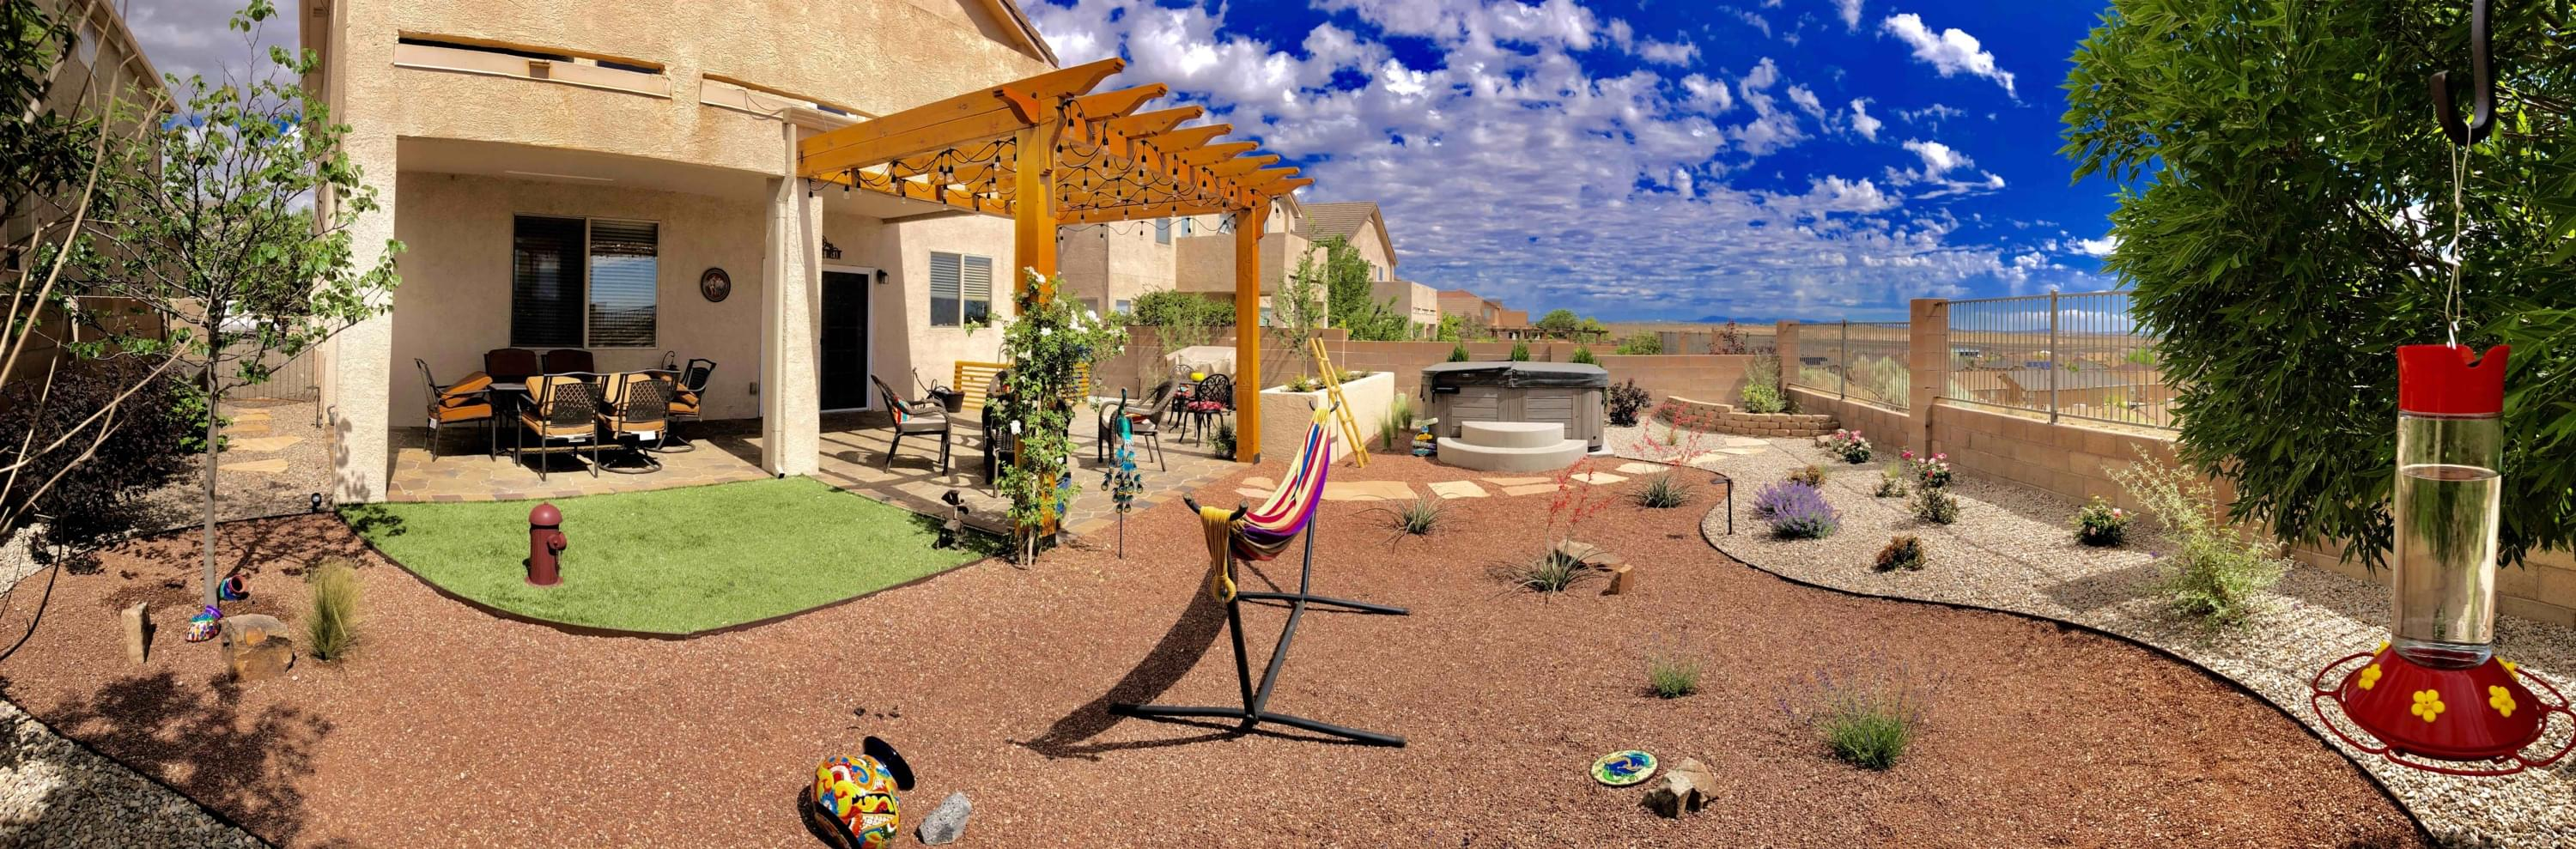 Southwest Landscaping in Santa Fe NM and Albuquerque NM